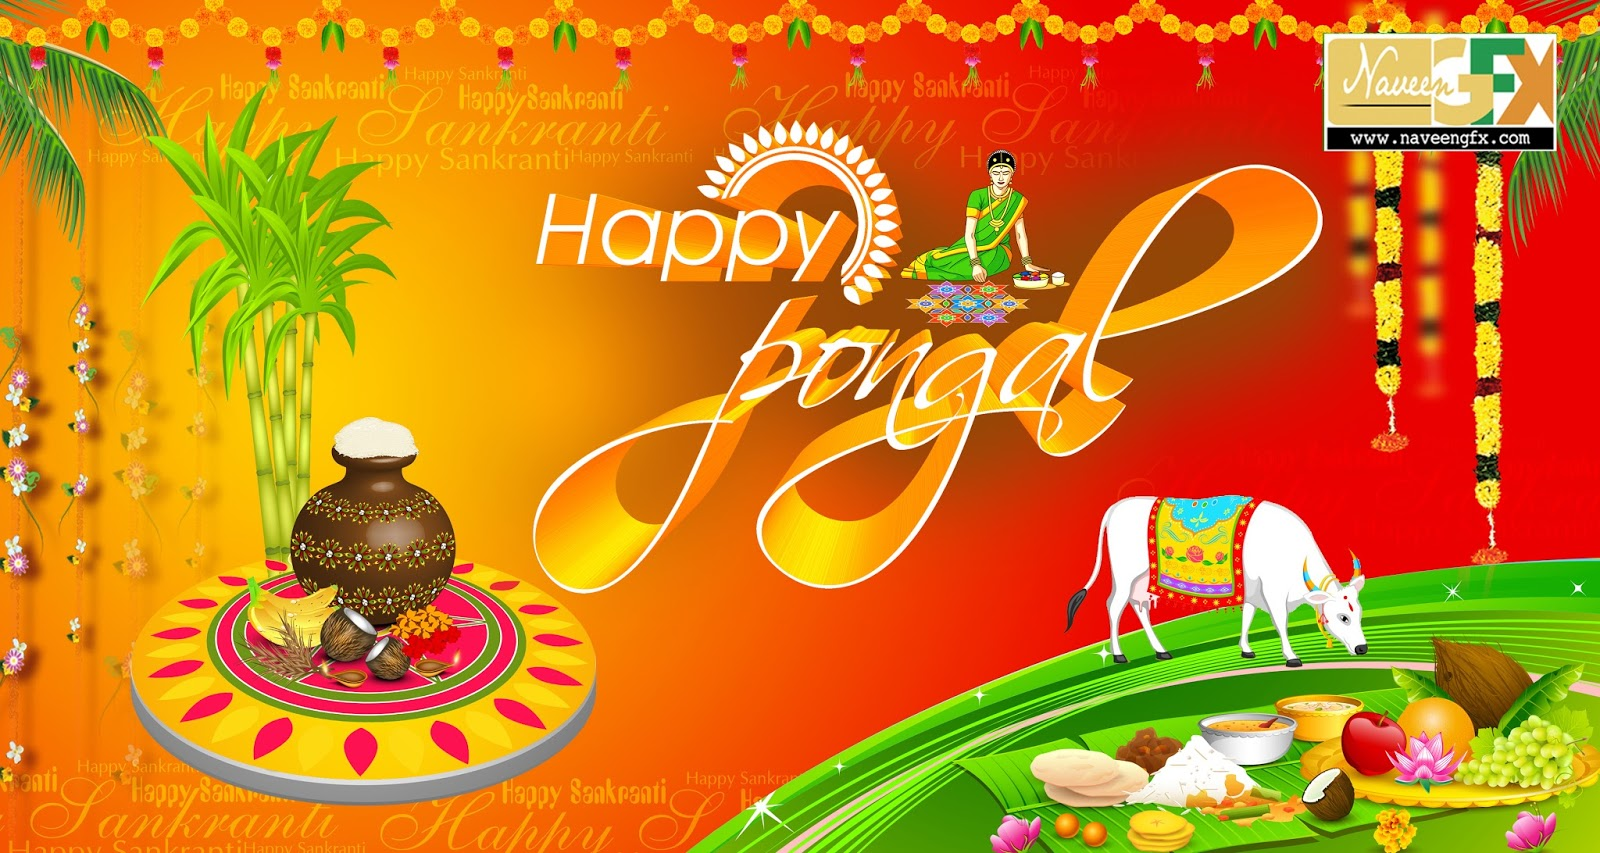 Happy Pongal Greetings Psd Template Free Downloads Naveengfx